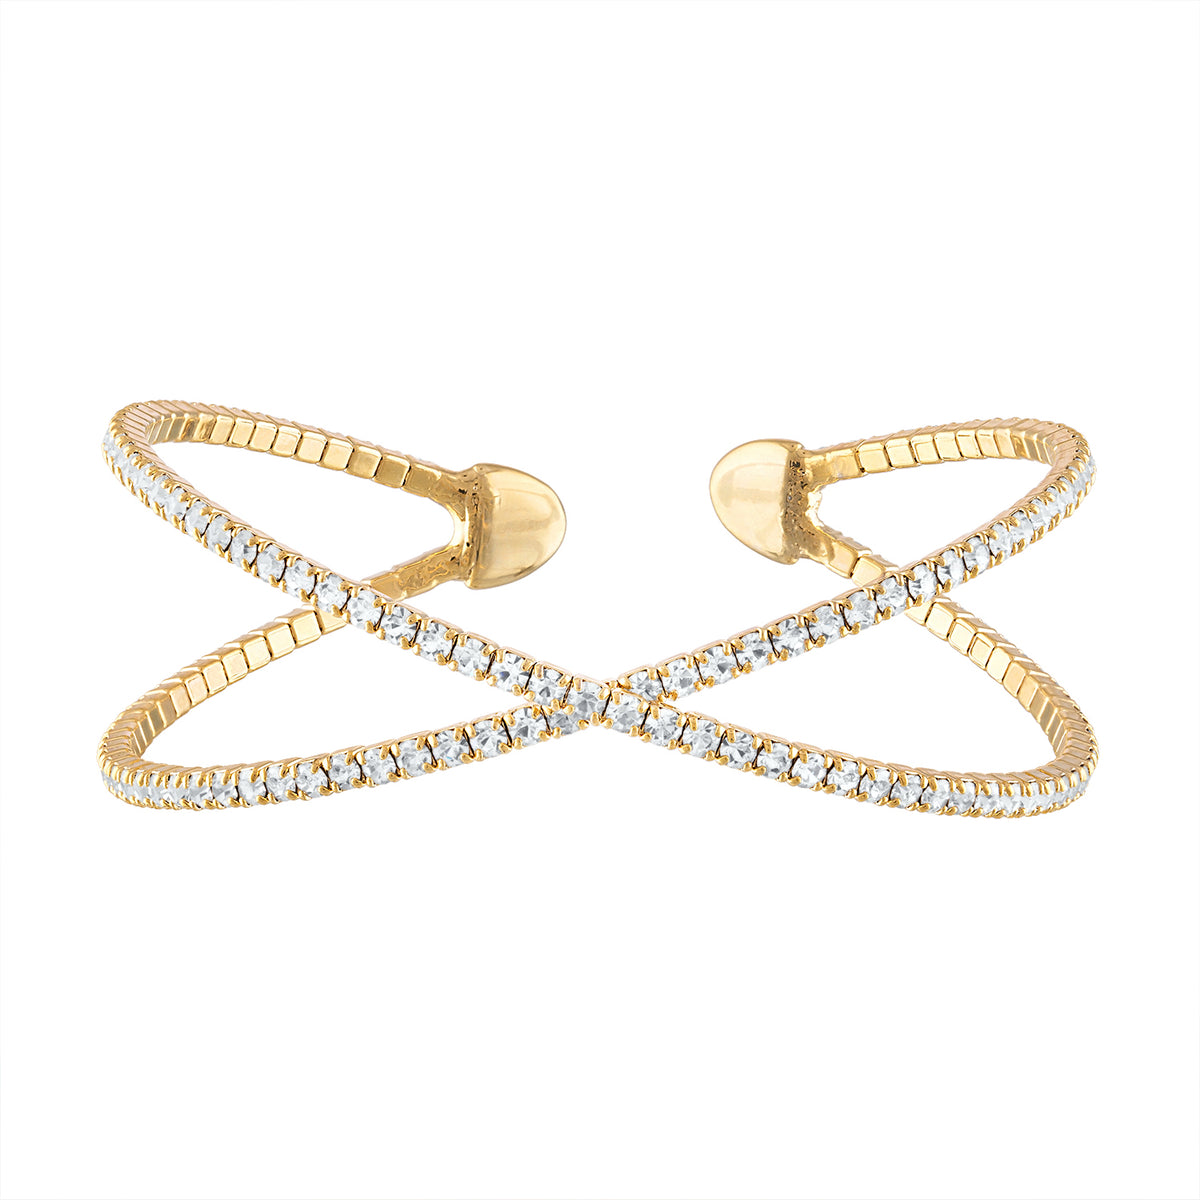 Pave Criss Cross Cuff